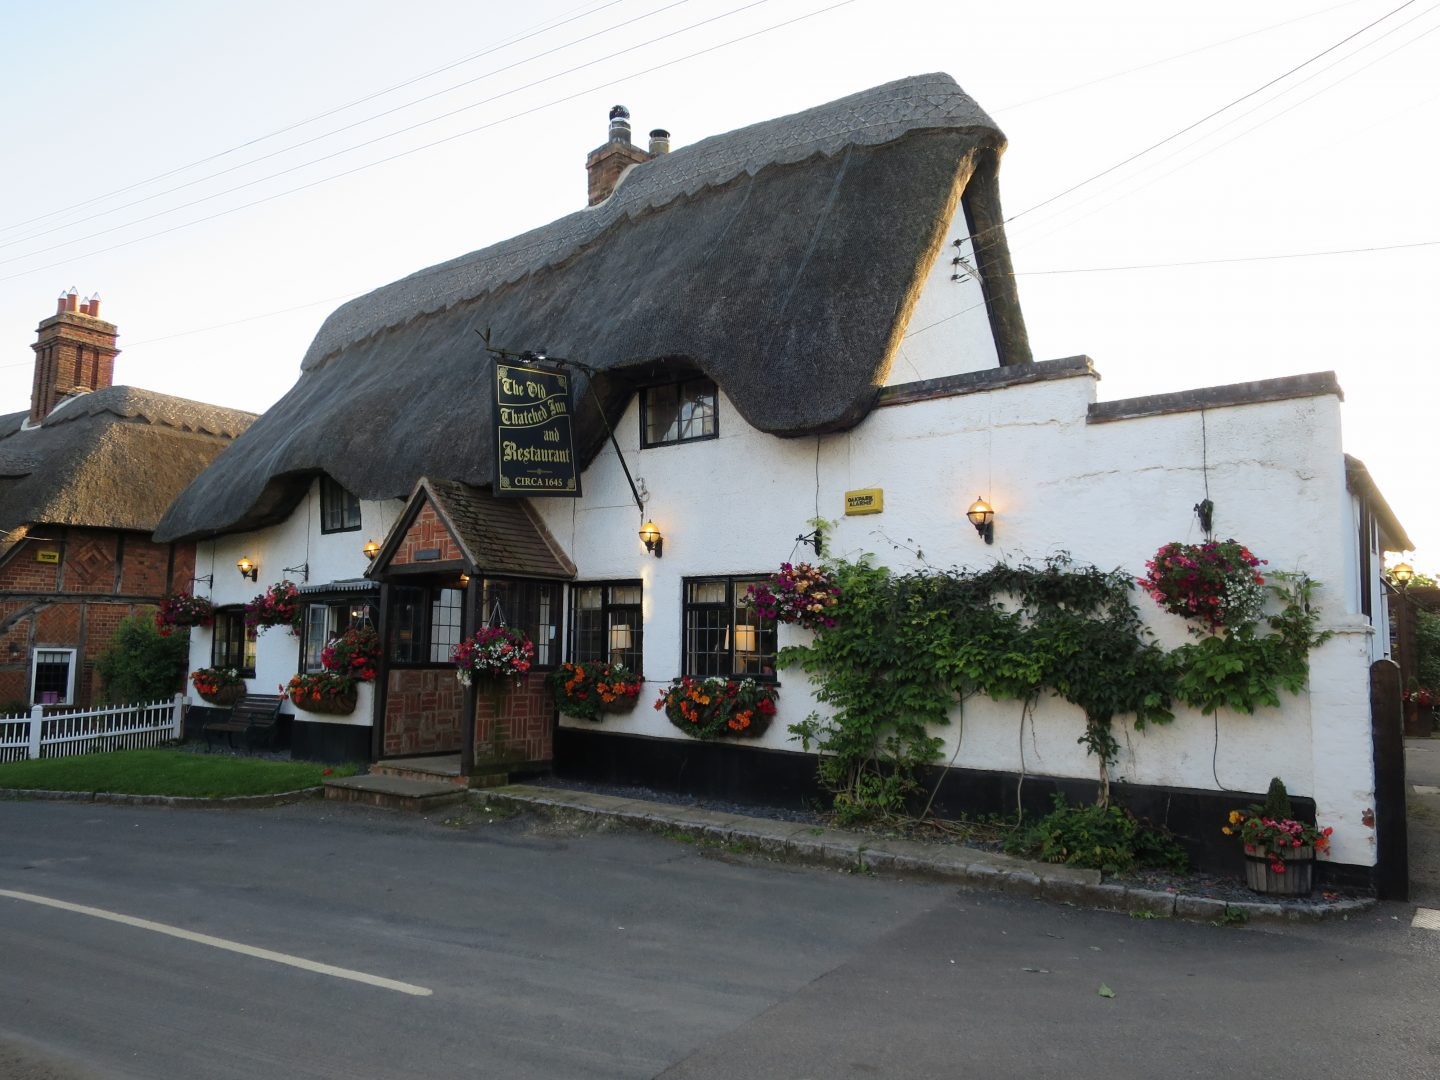 Old Thatched Inn, Adstock, Buckinghamshire. Staycation Inspiration by Malvern Garden Buildings